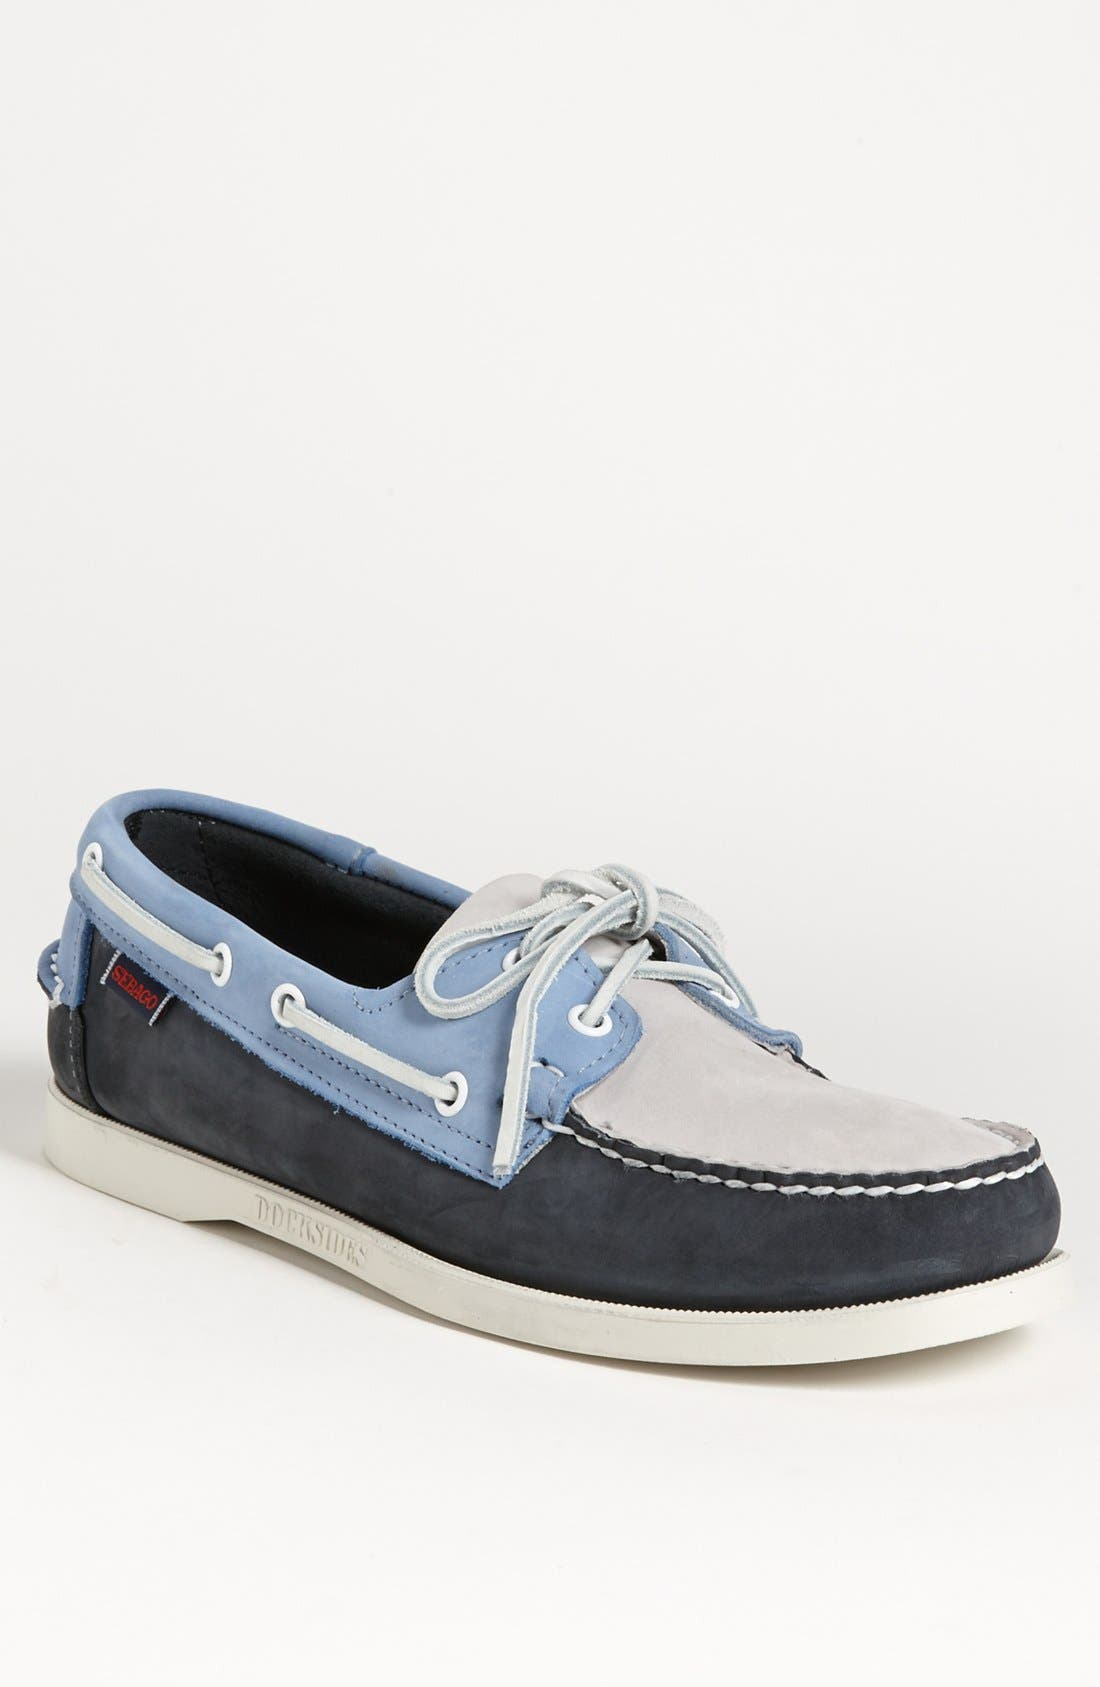 Main Image - Sebago 'Spinnaker' Boat Shoe (Men)